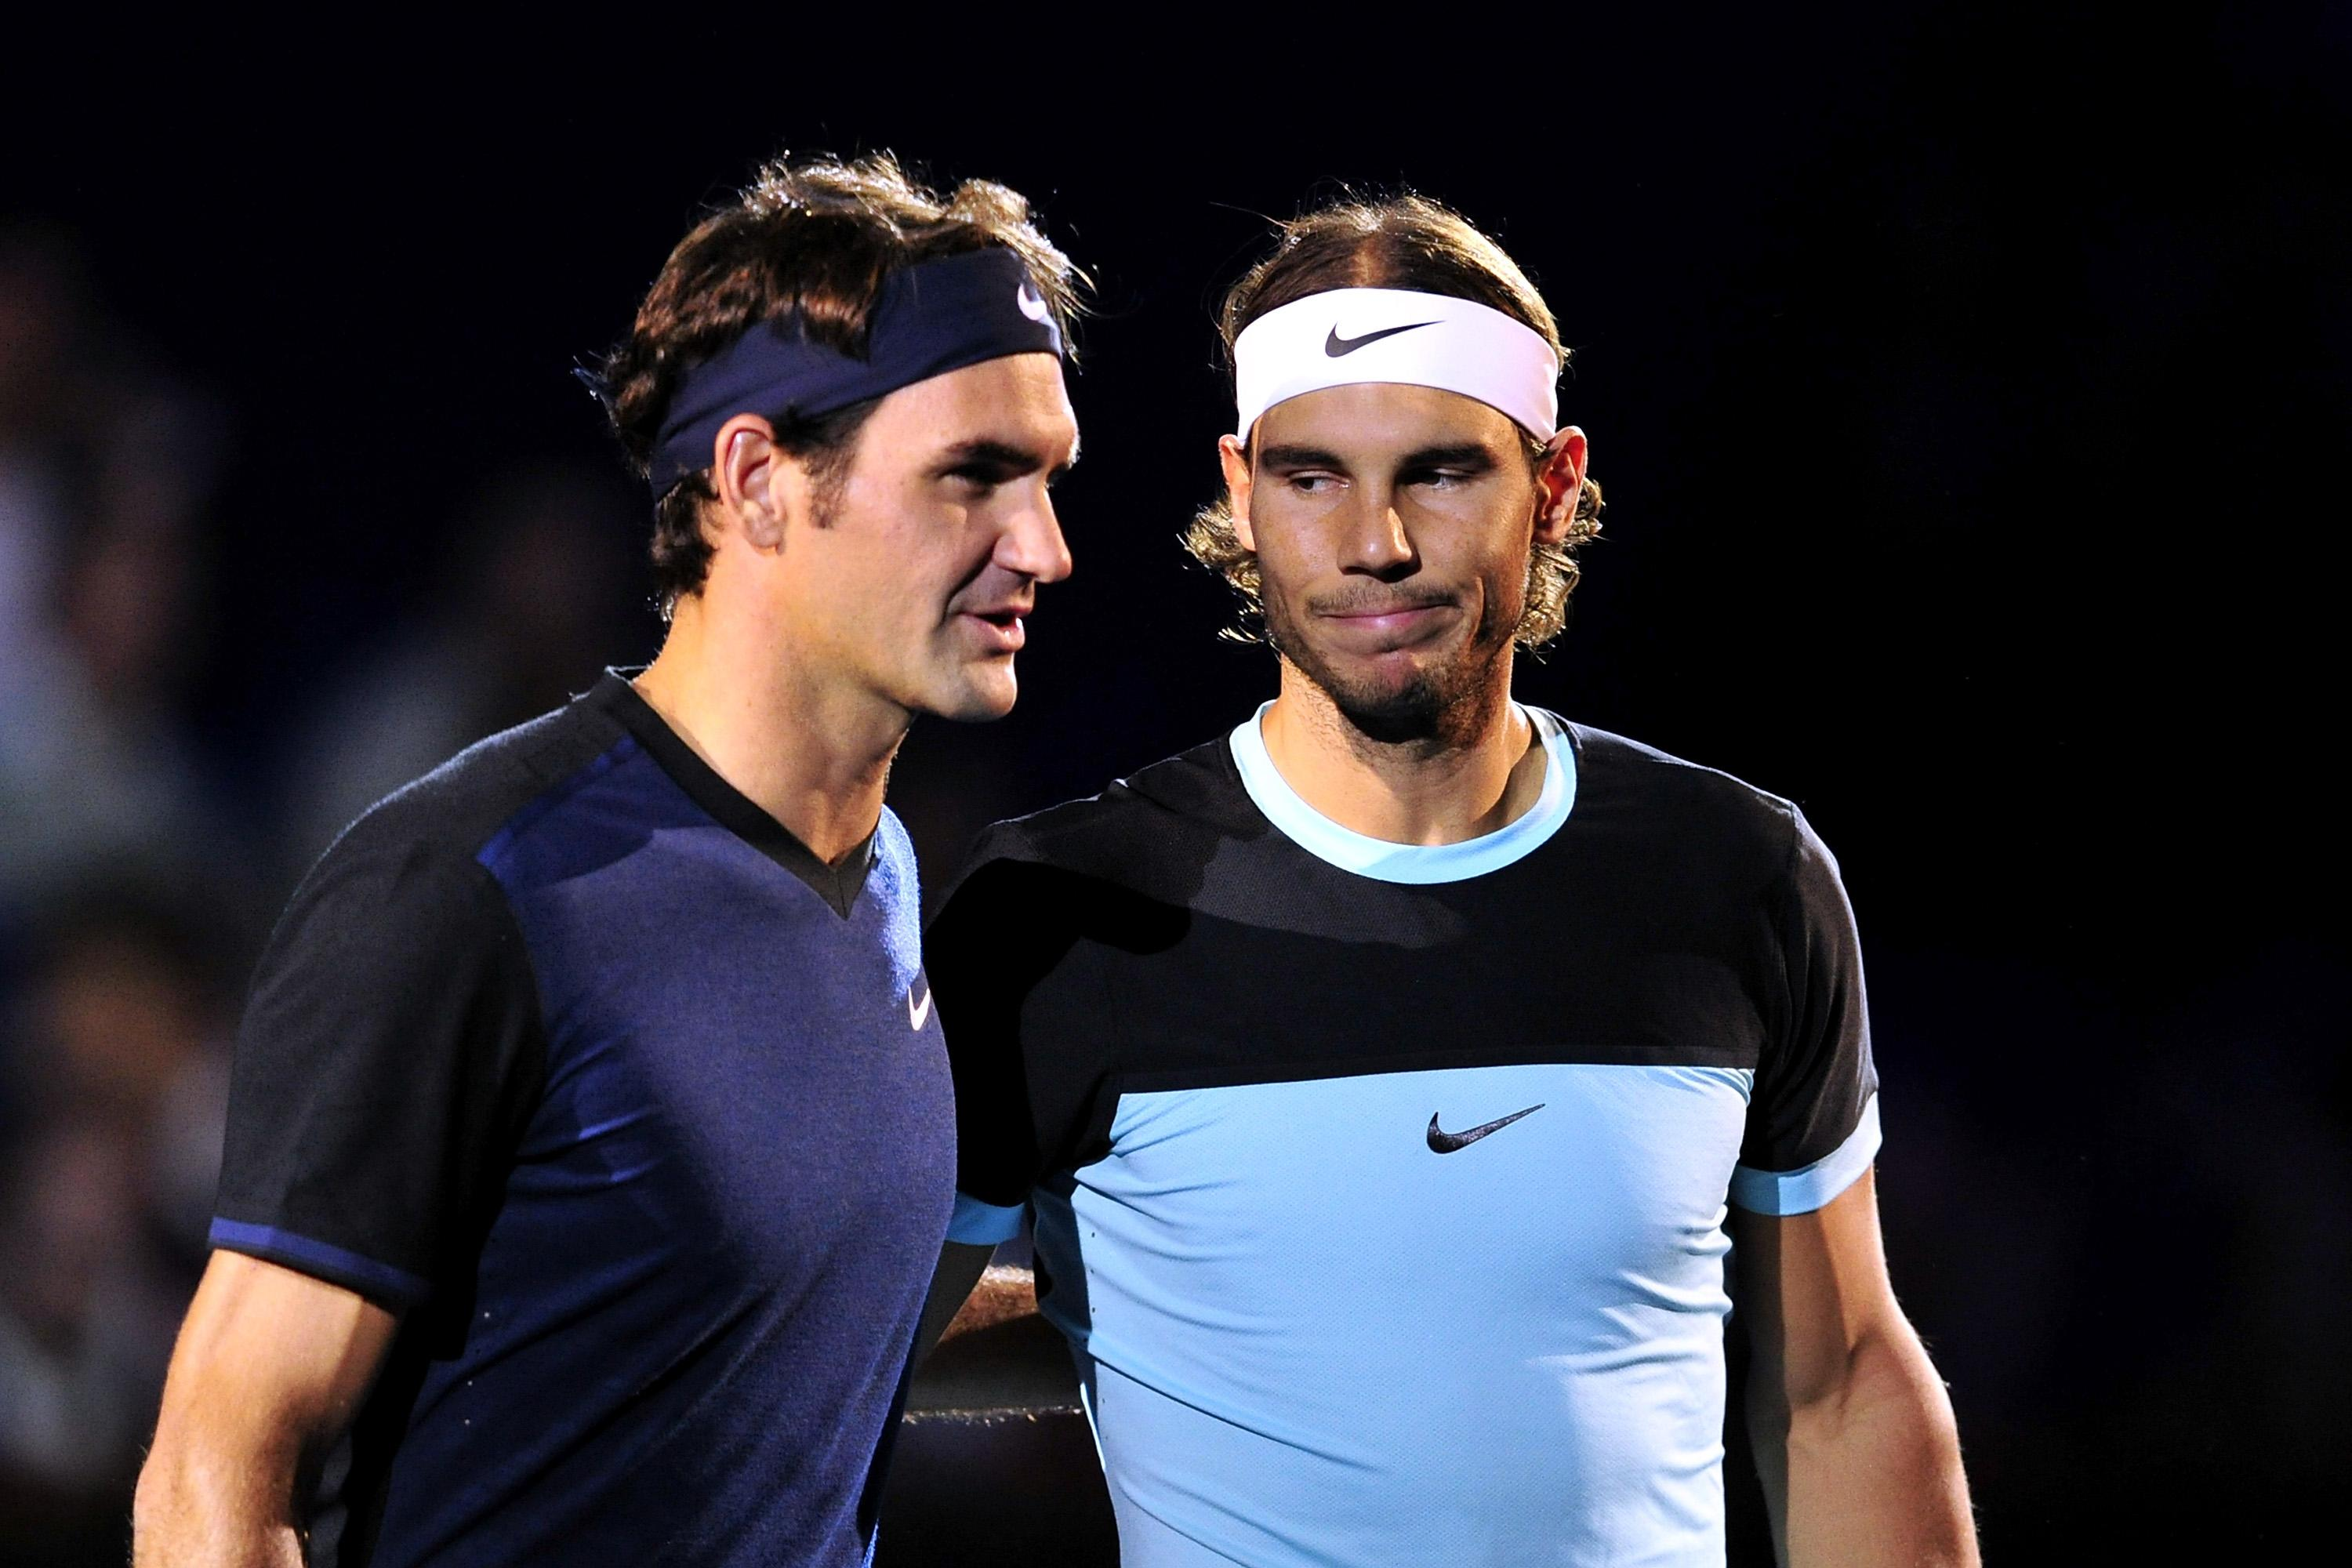 Roger Federer vs. Rafael Nadal is going to be exhaustingly worth it